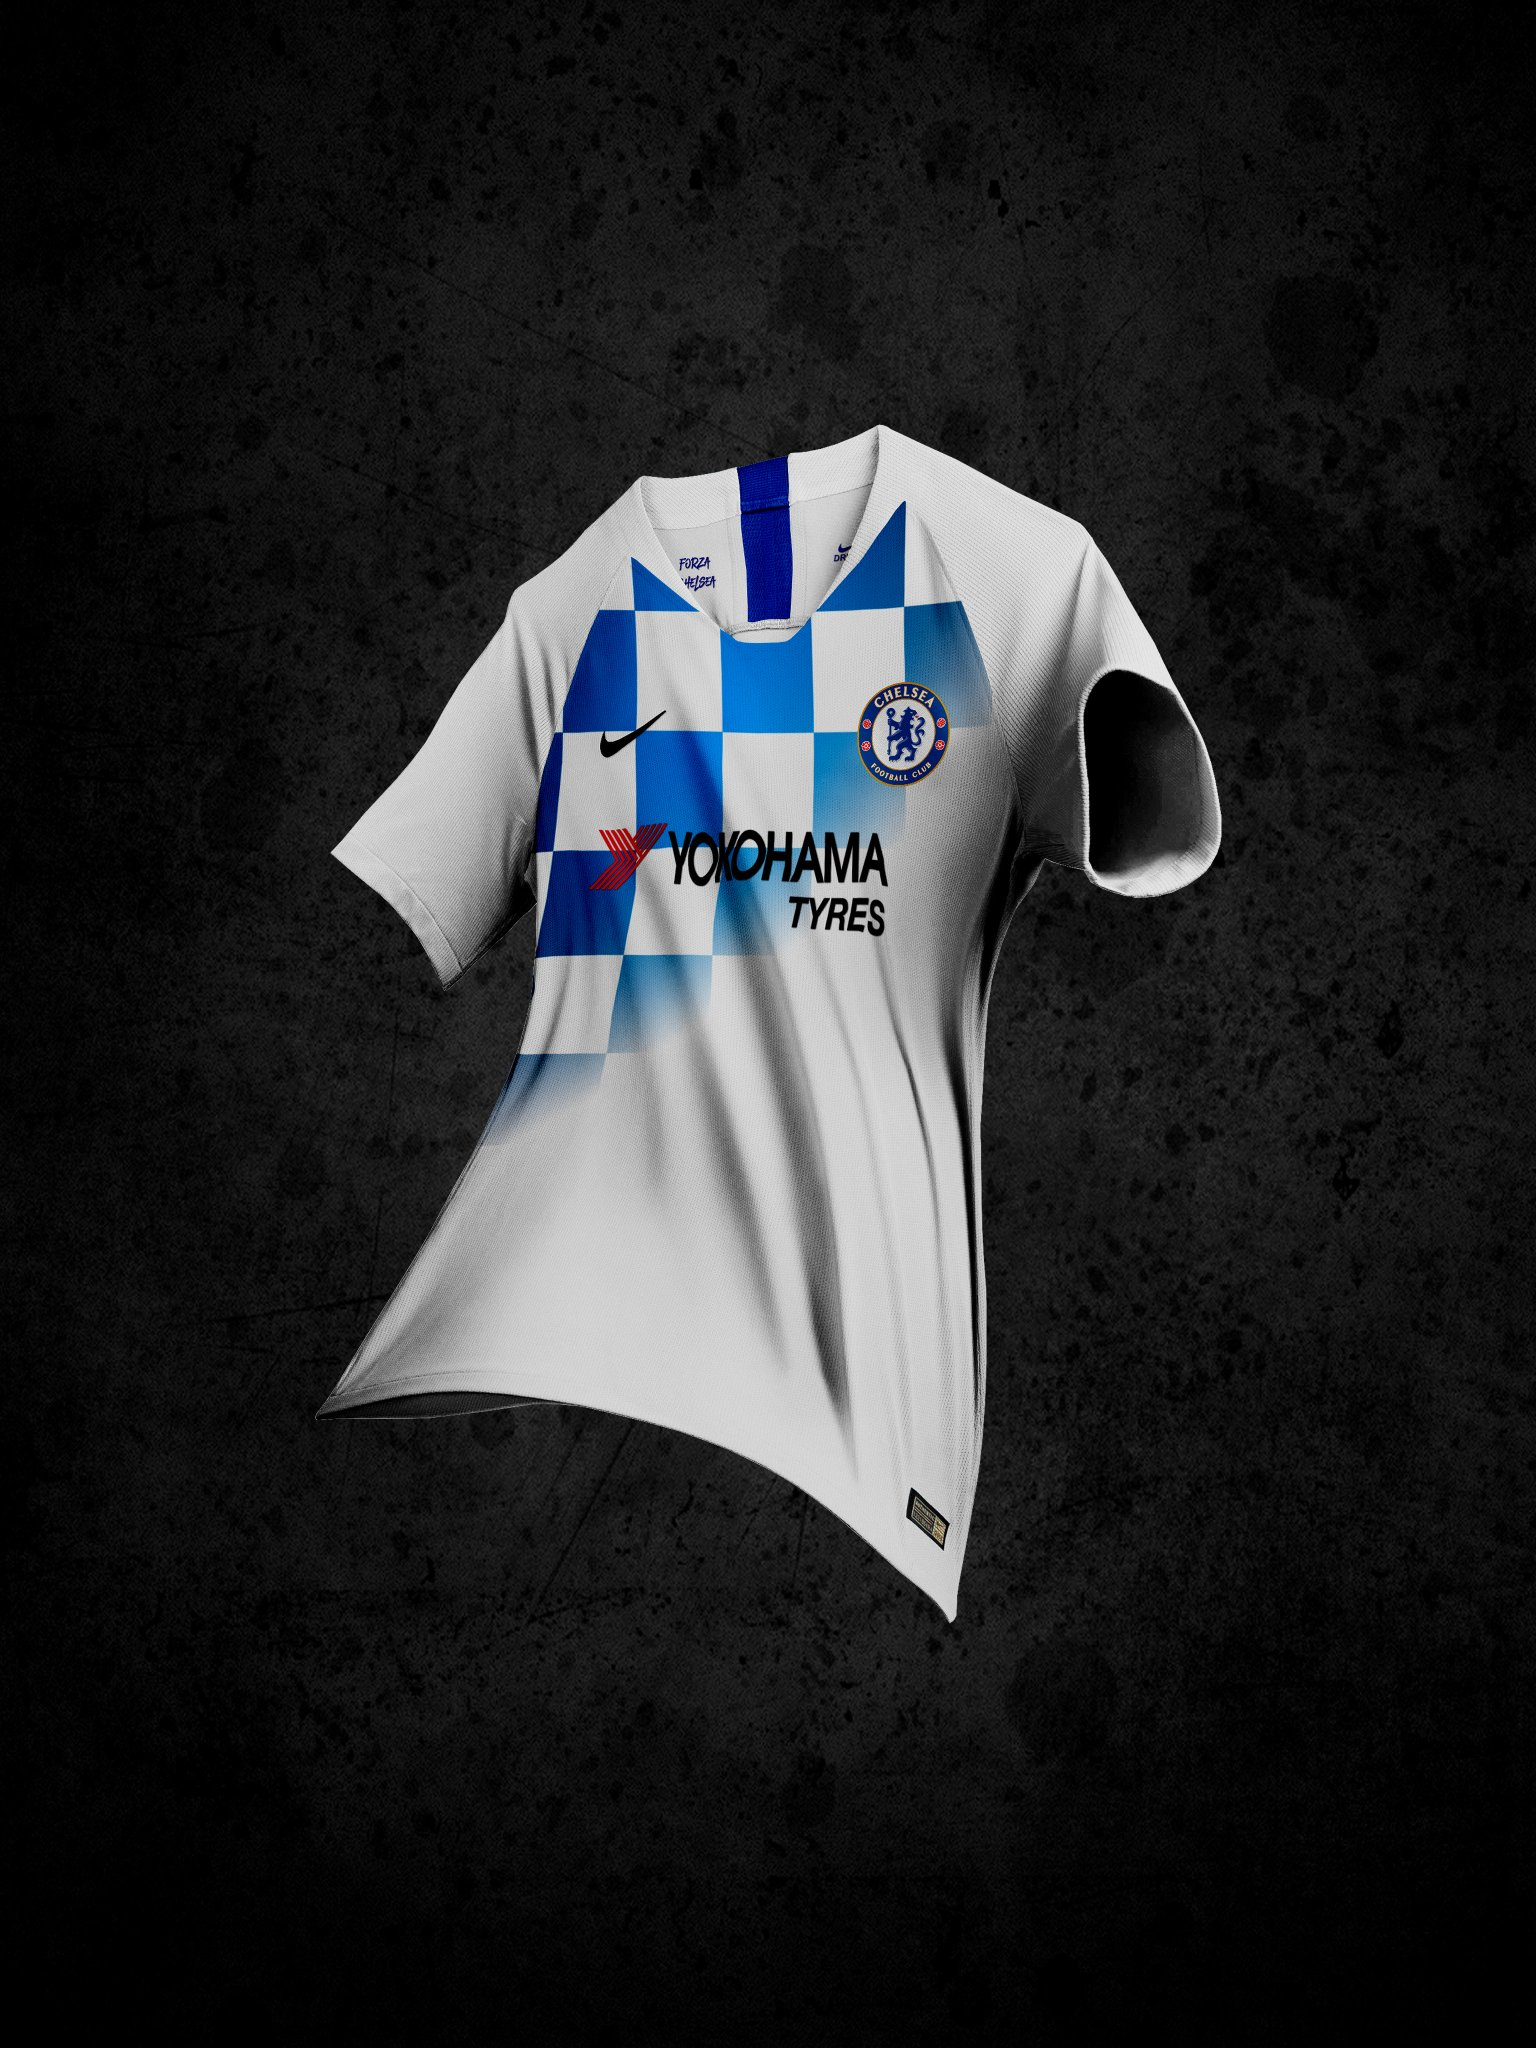 huge discount 63789 d4533 Chelsea's Away Kit Concept for 2019/20 is Doing the Rounds